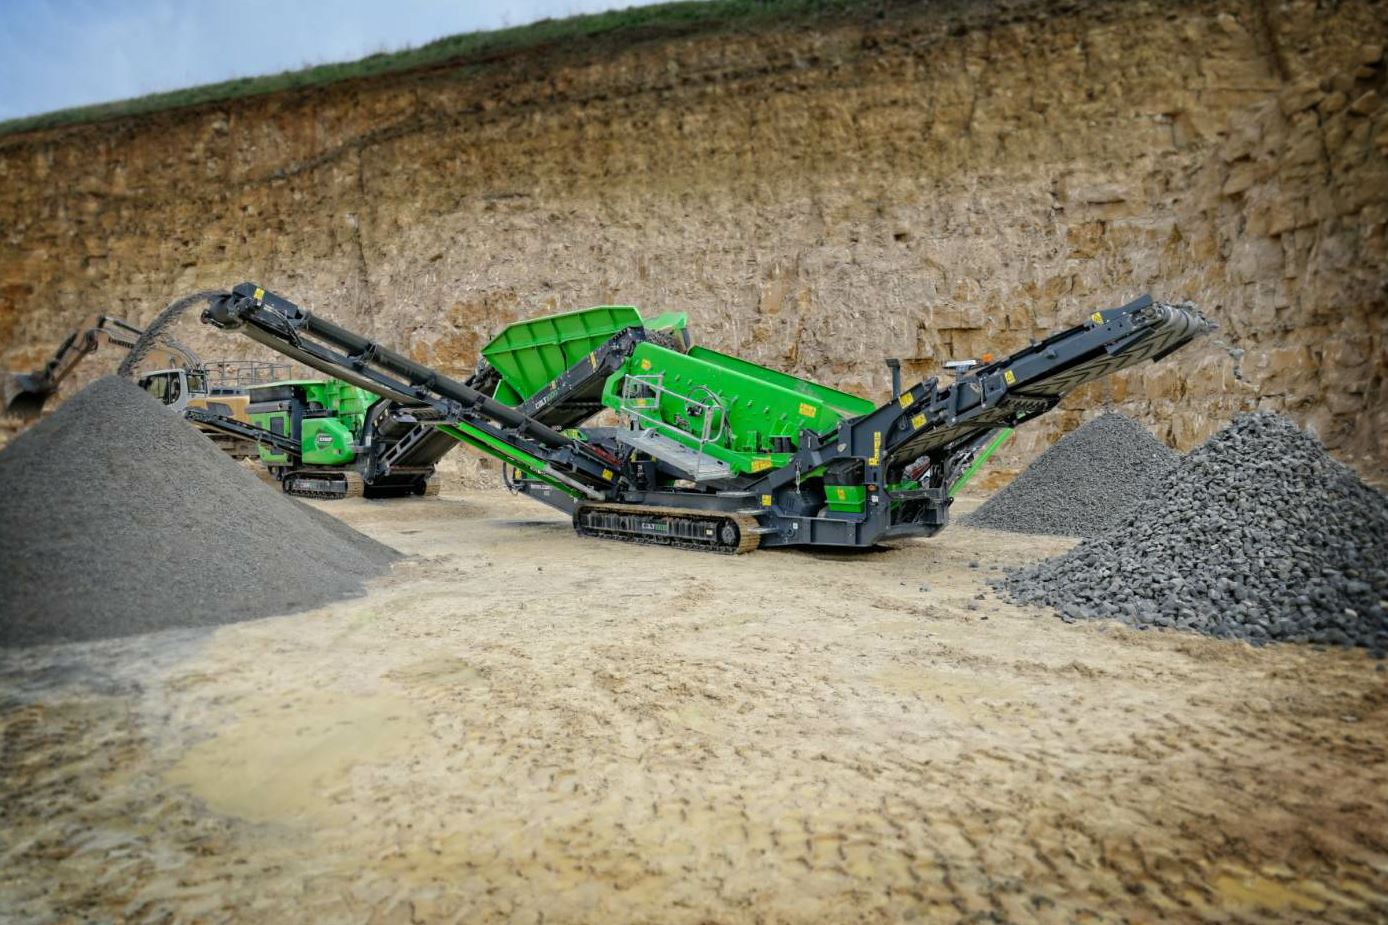 The Colt 1000 is a tracked mobile unit. Photo courtesy EvoQuip.